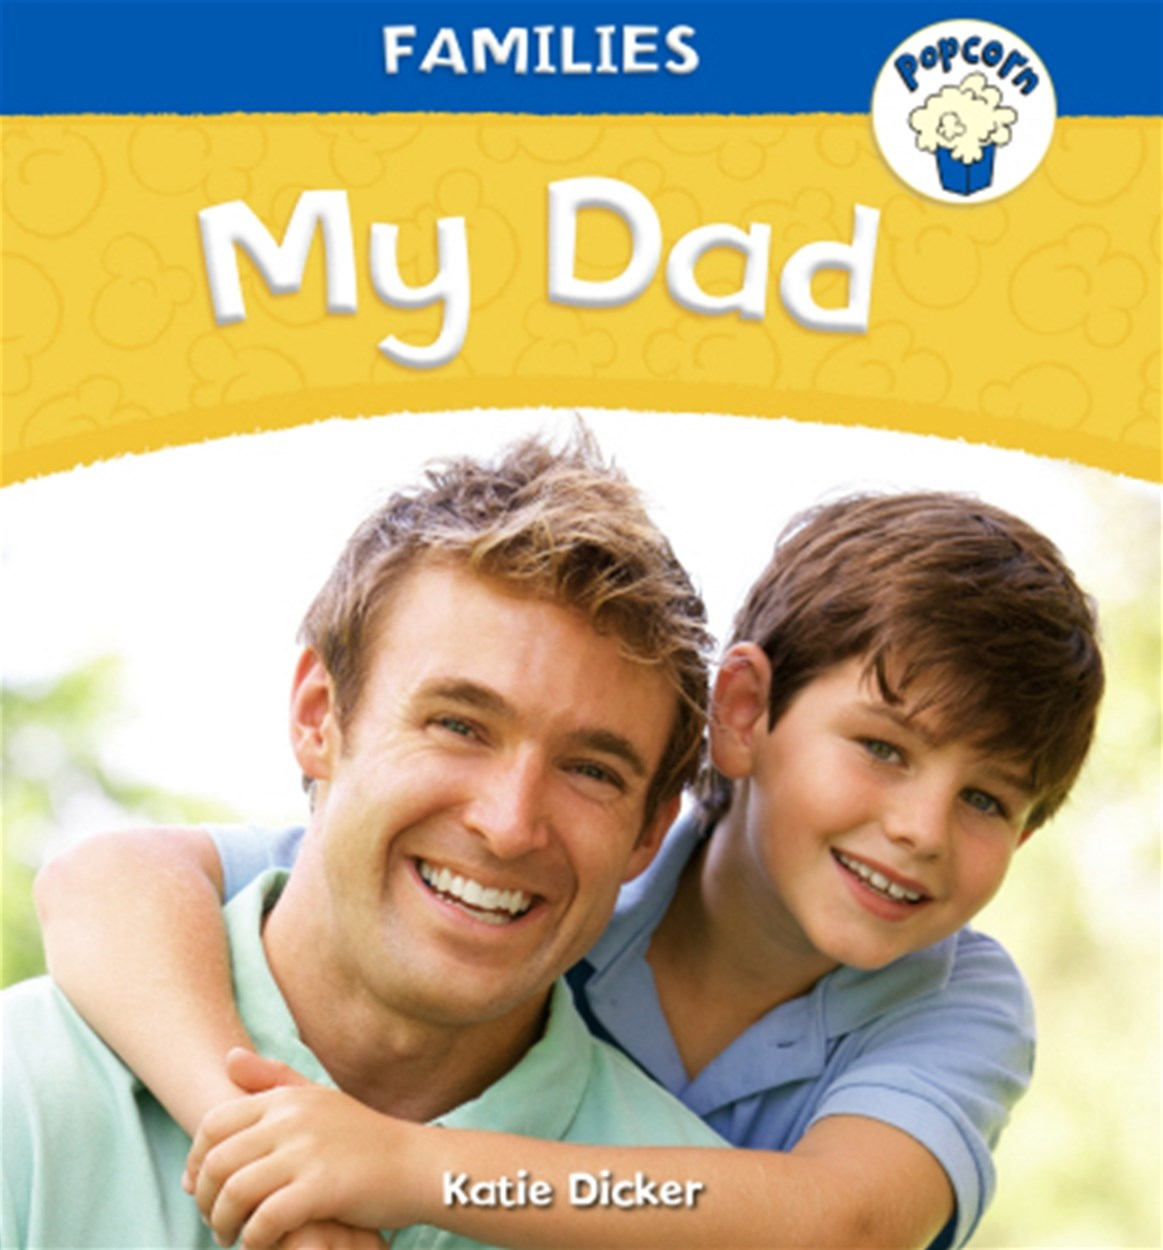 Popcorn: Families: My Dad